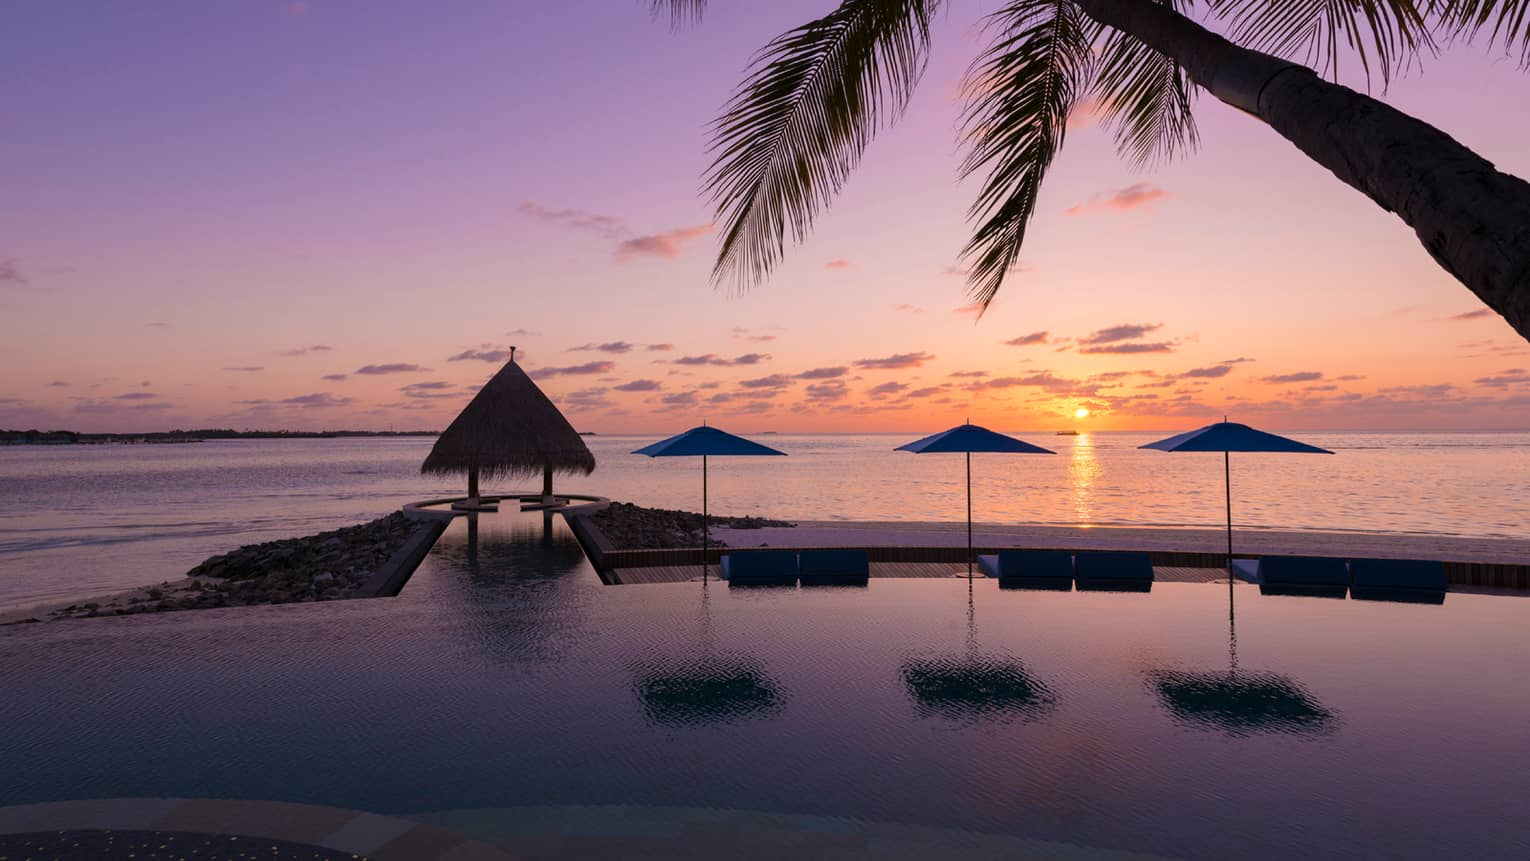 Sunset view of outdoor infinity pool near the beach